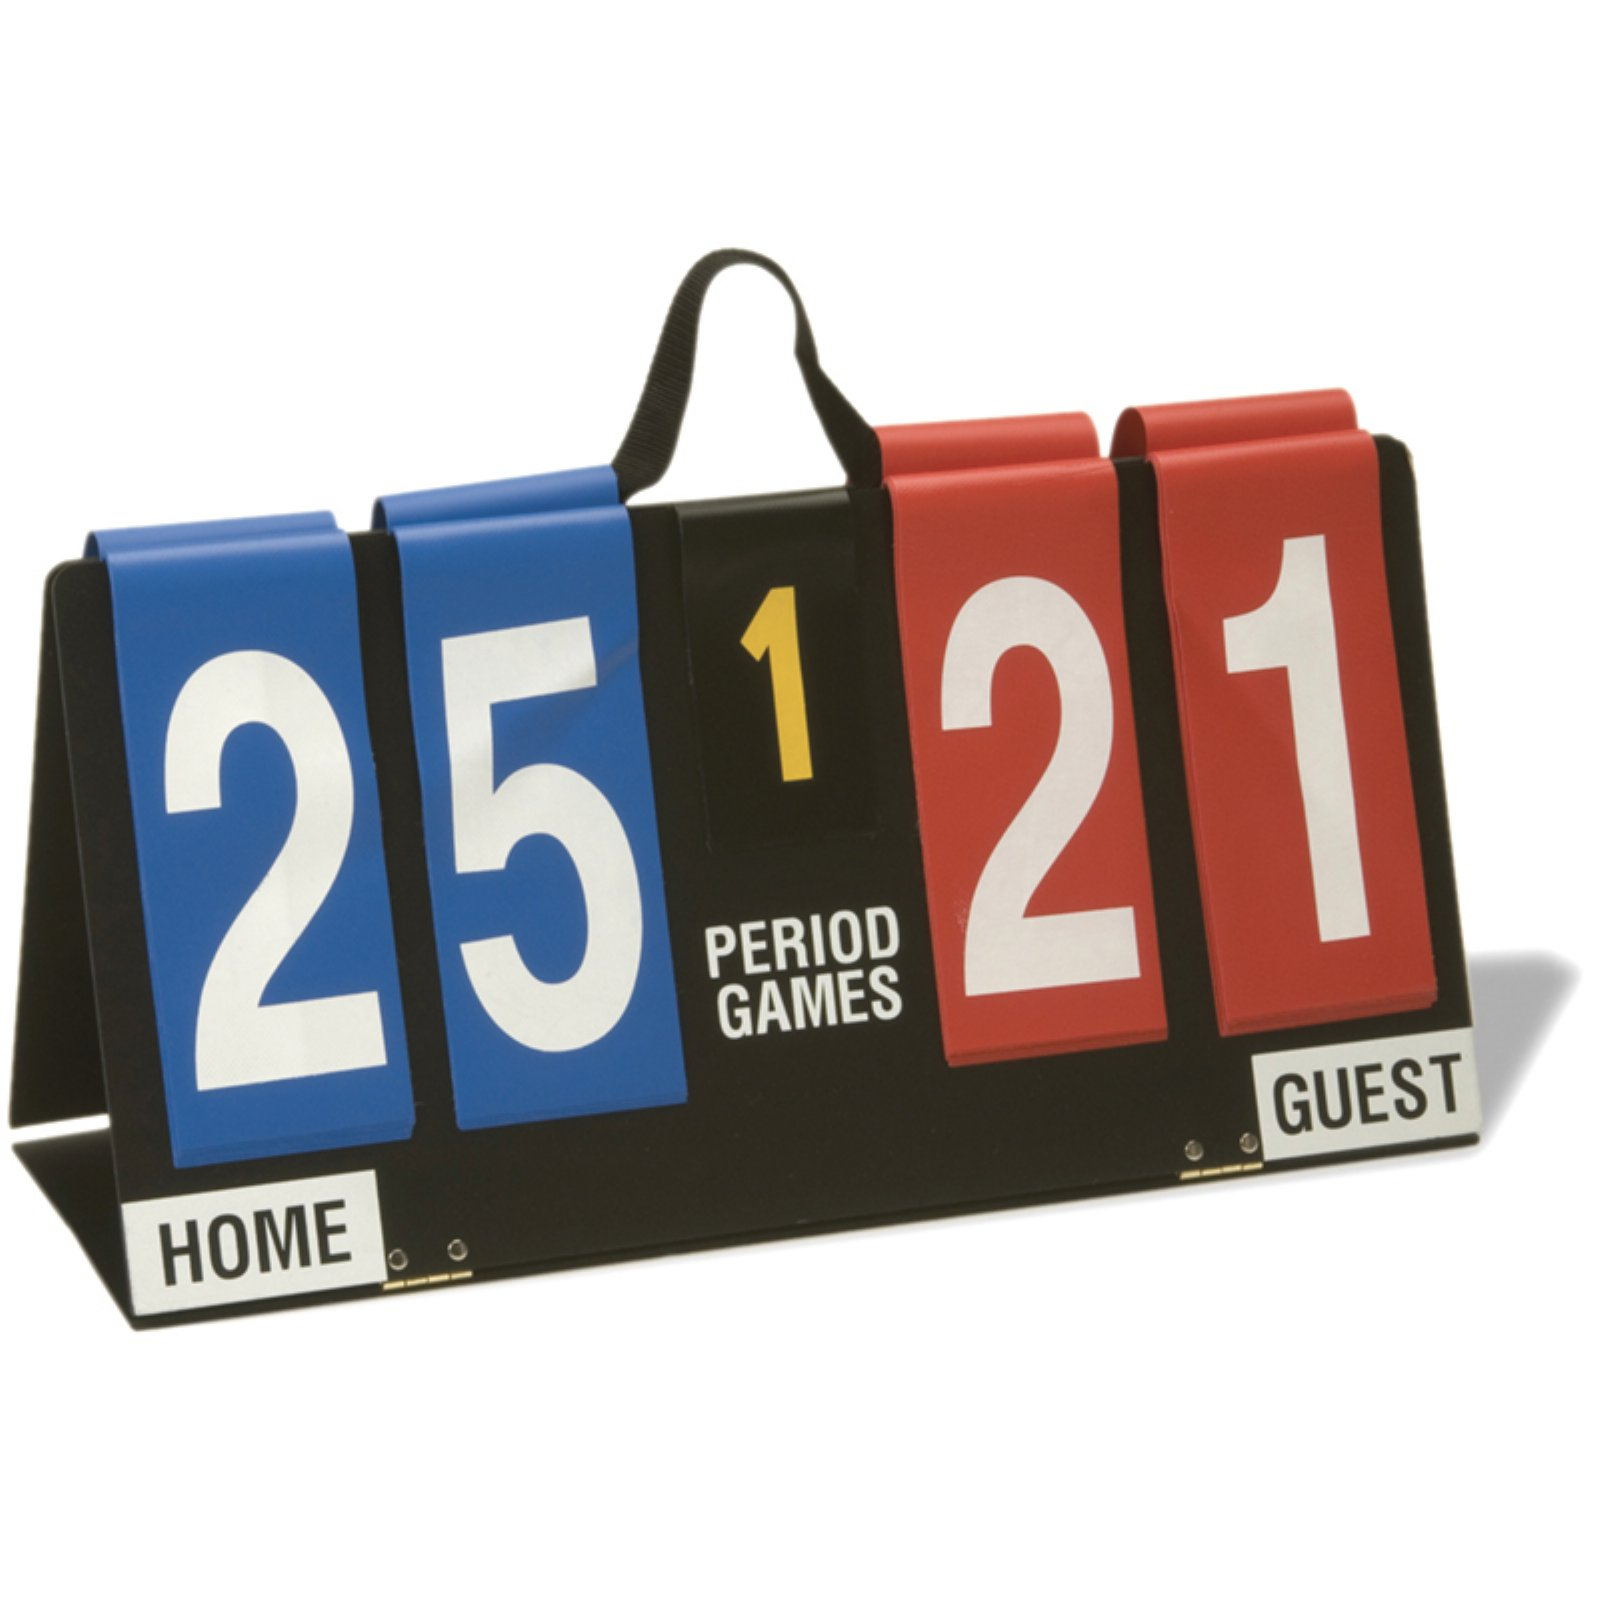 "Sportime Deluxe Score Flipper with 5 Period Indicator, 7"" Number Letter"